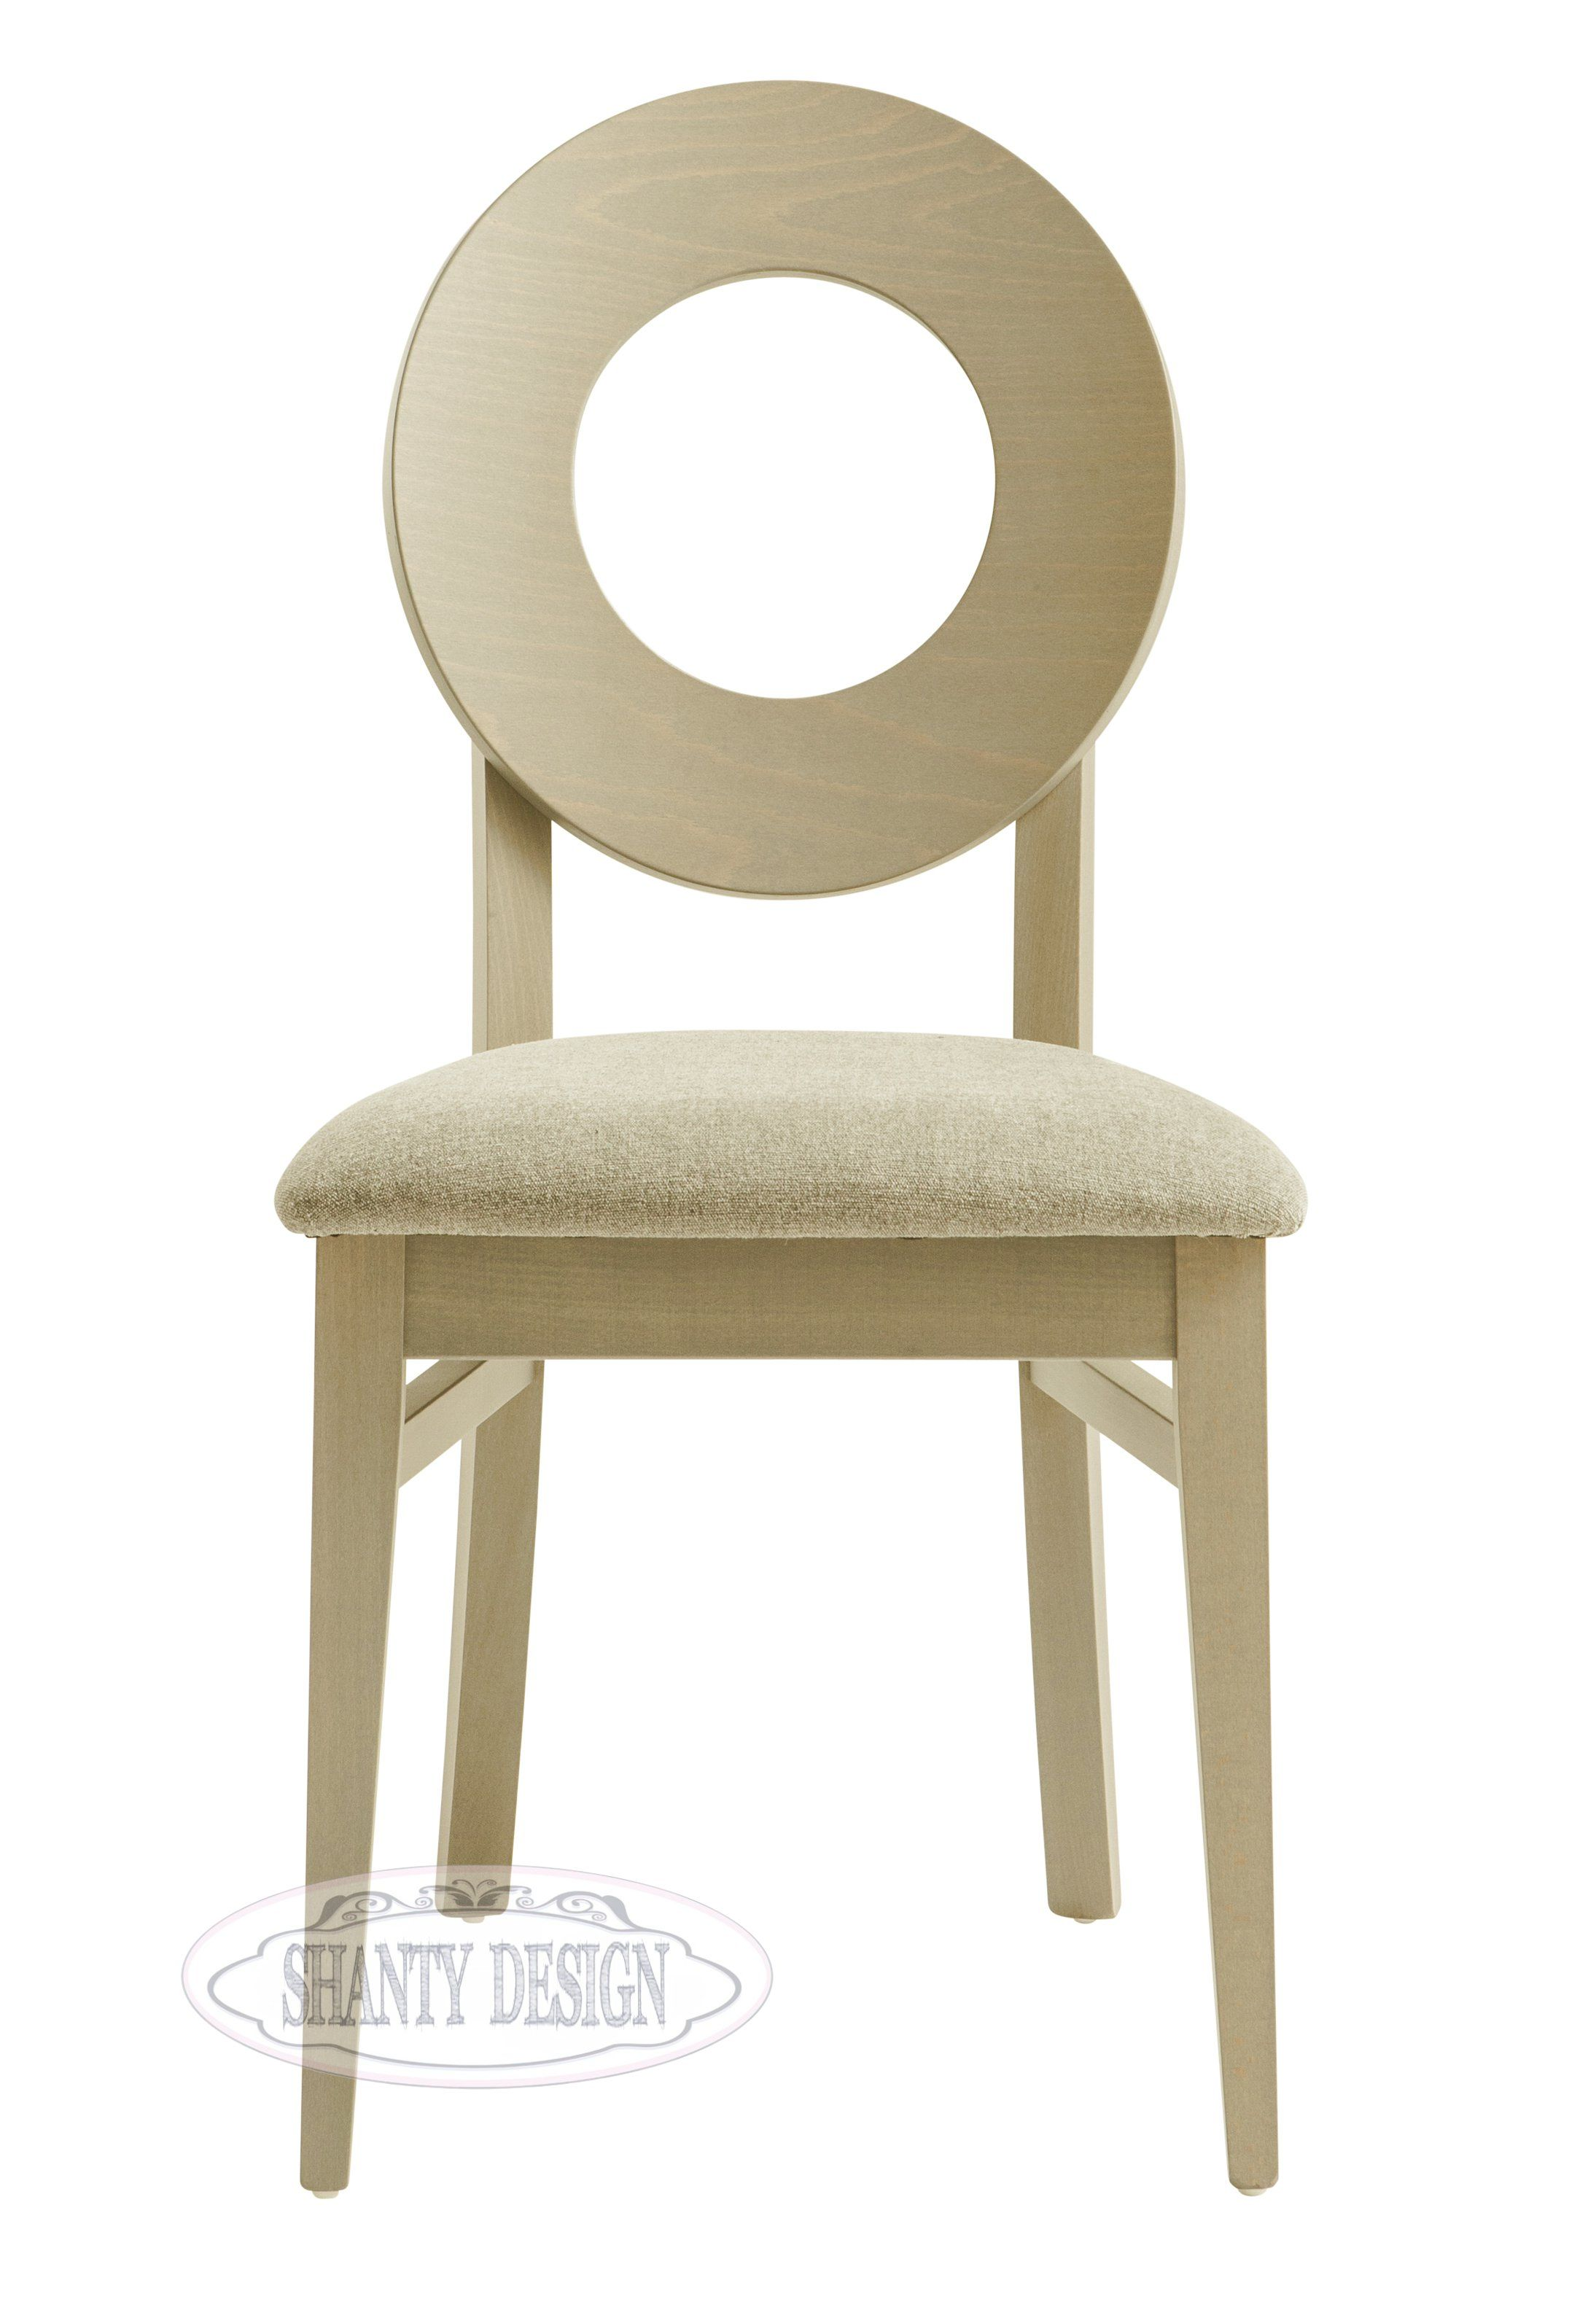 Sedia vintage industrial roma 17 sedie shabby chic for Sedie shabby chic usate